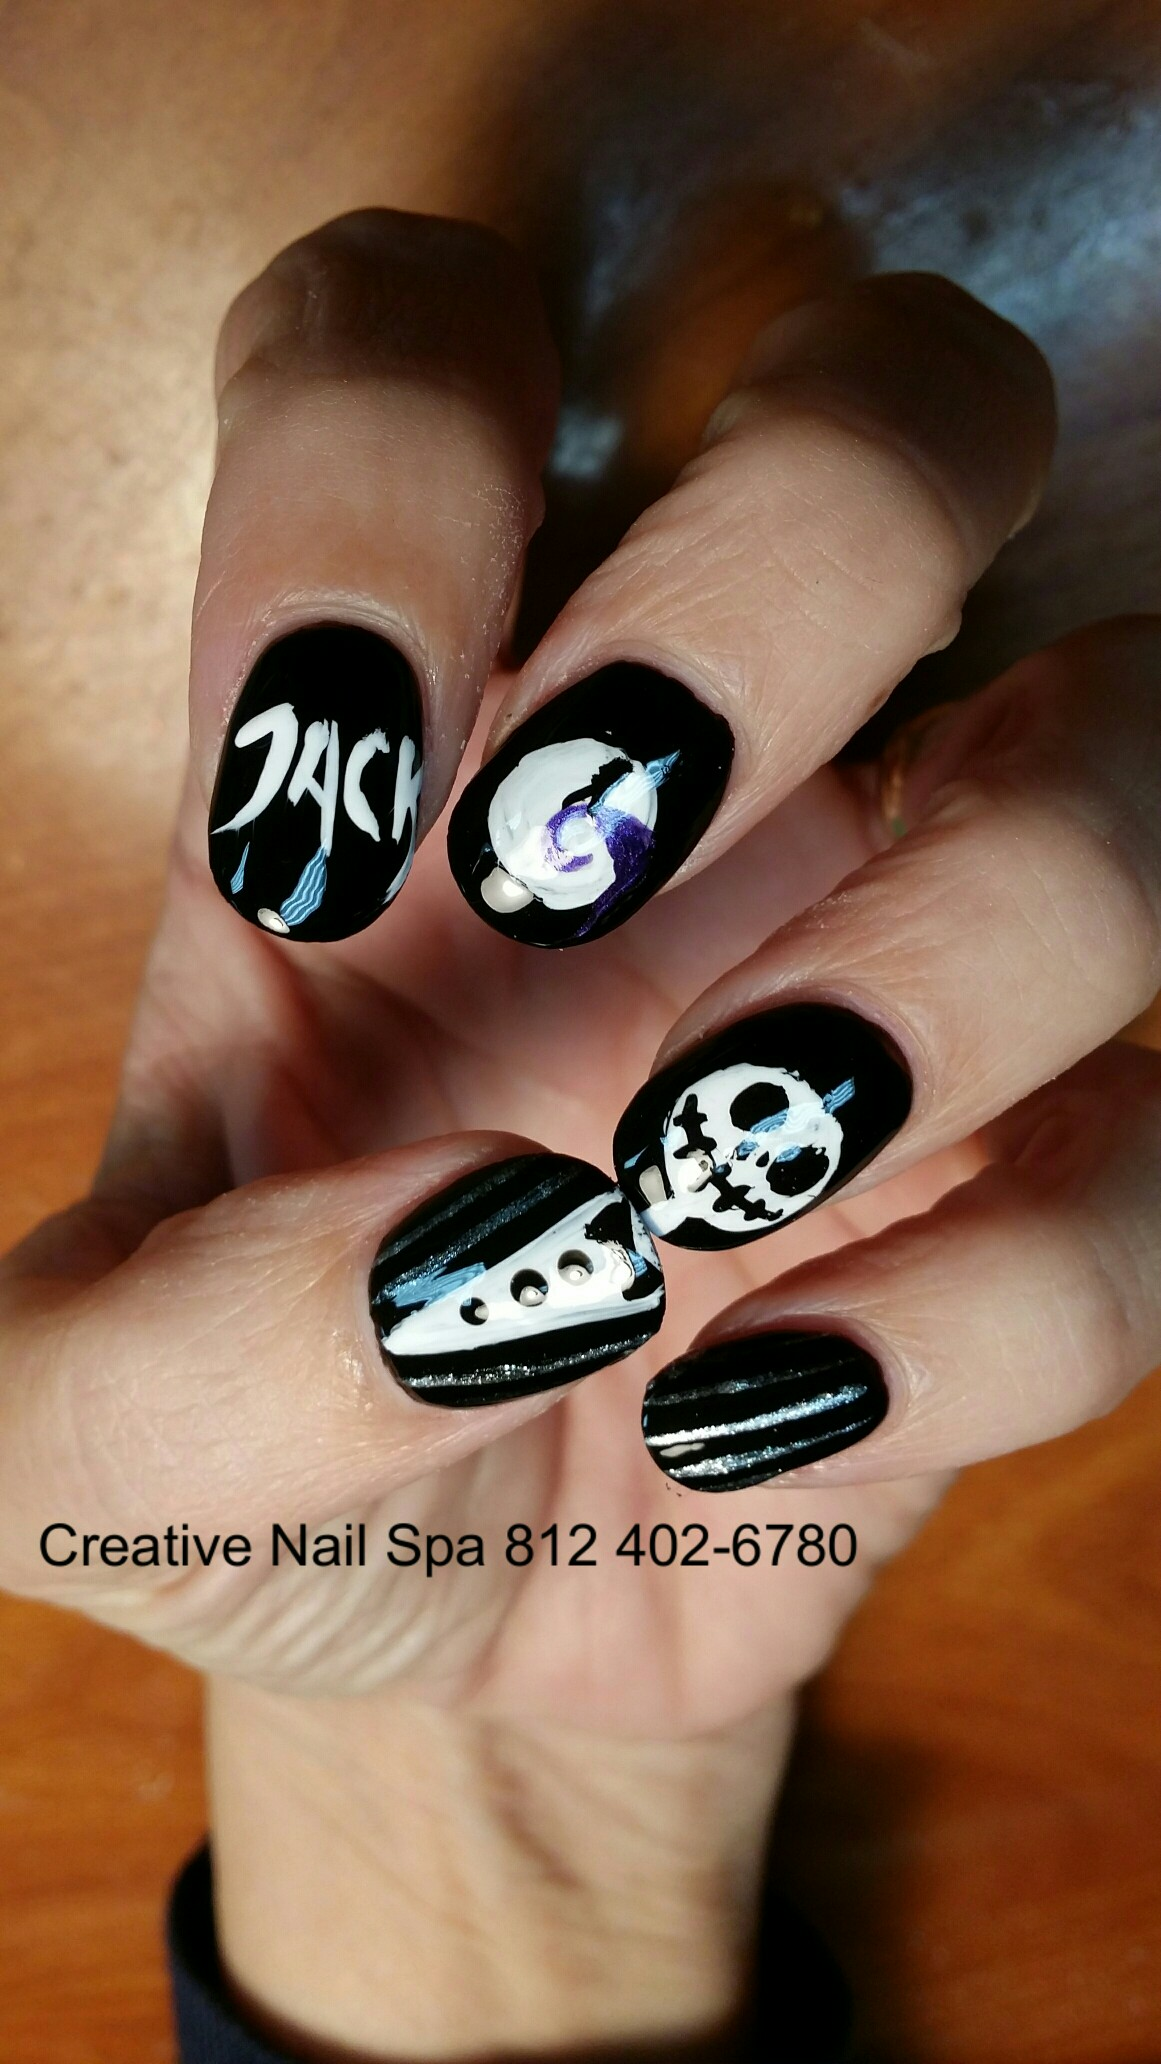 Creative Nail Spa 564 S Green River Rd, Evansville, IN 47715 - YP.com